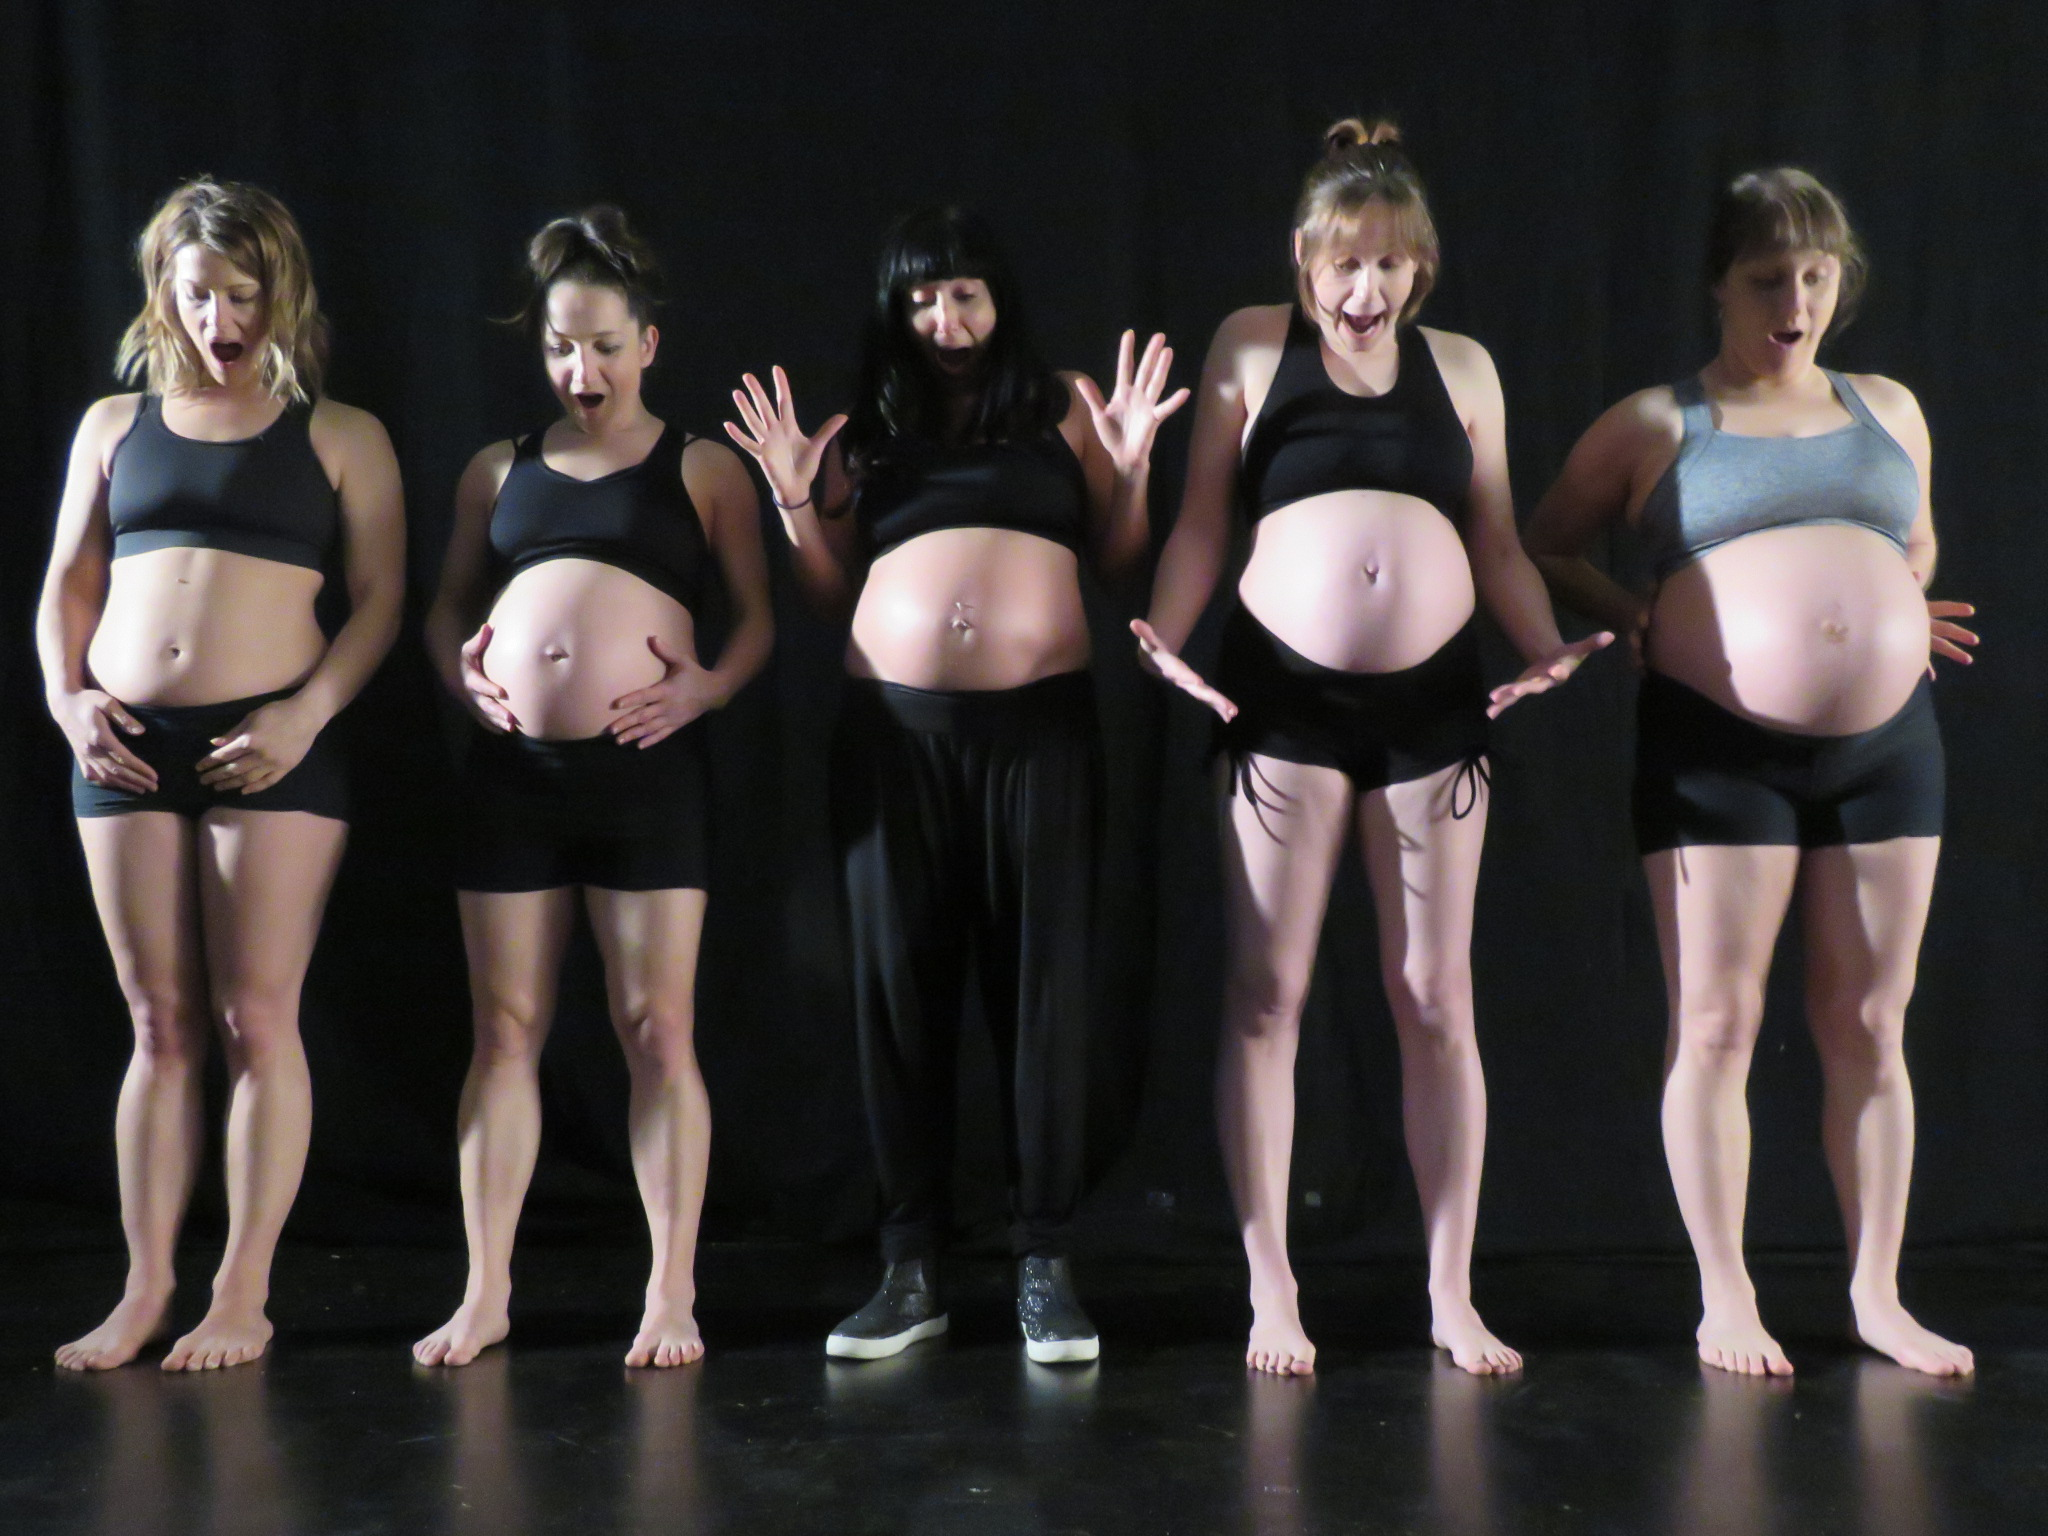 Five pregnant women standing in a line, looking down at their bumps in suprise, as if they have only just noticed they are pregnant.